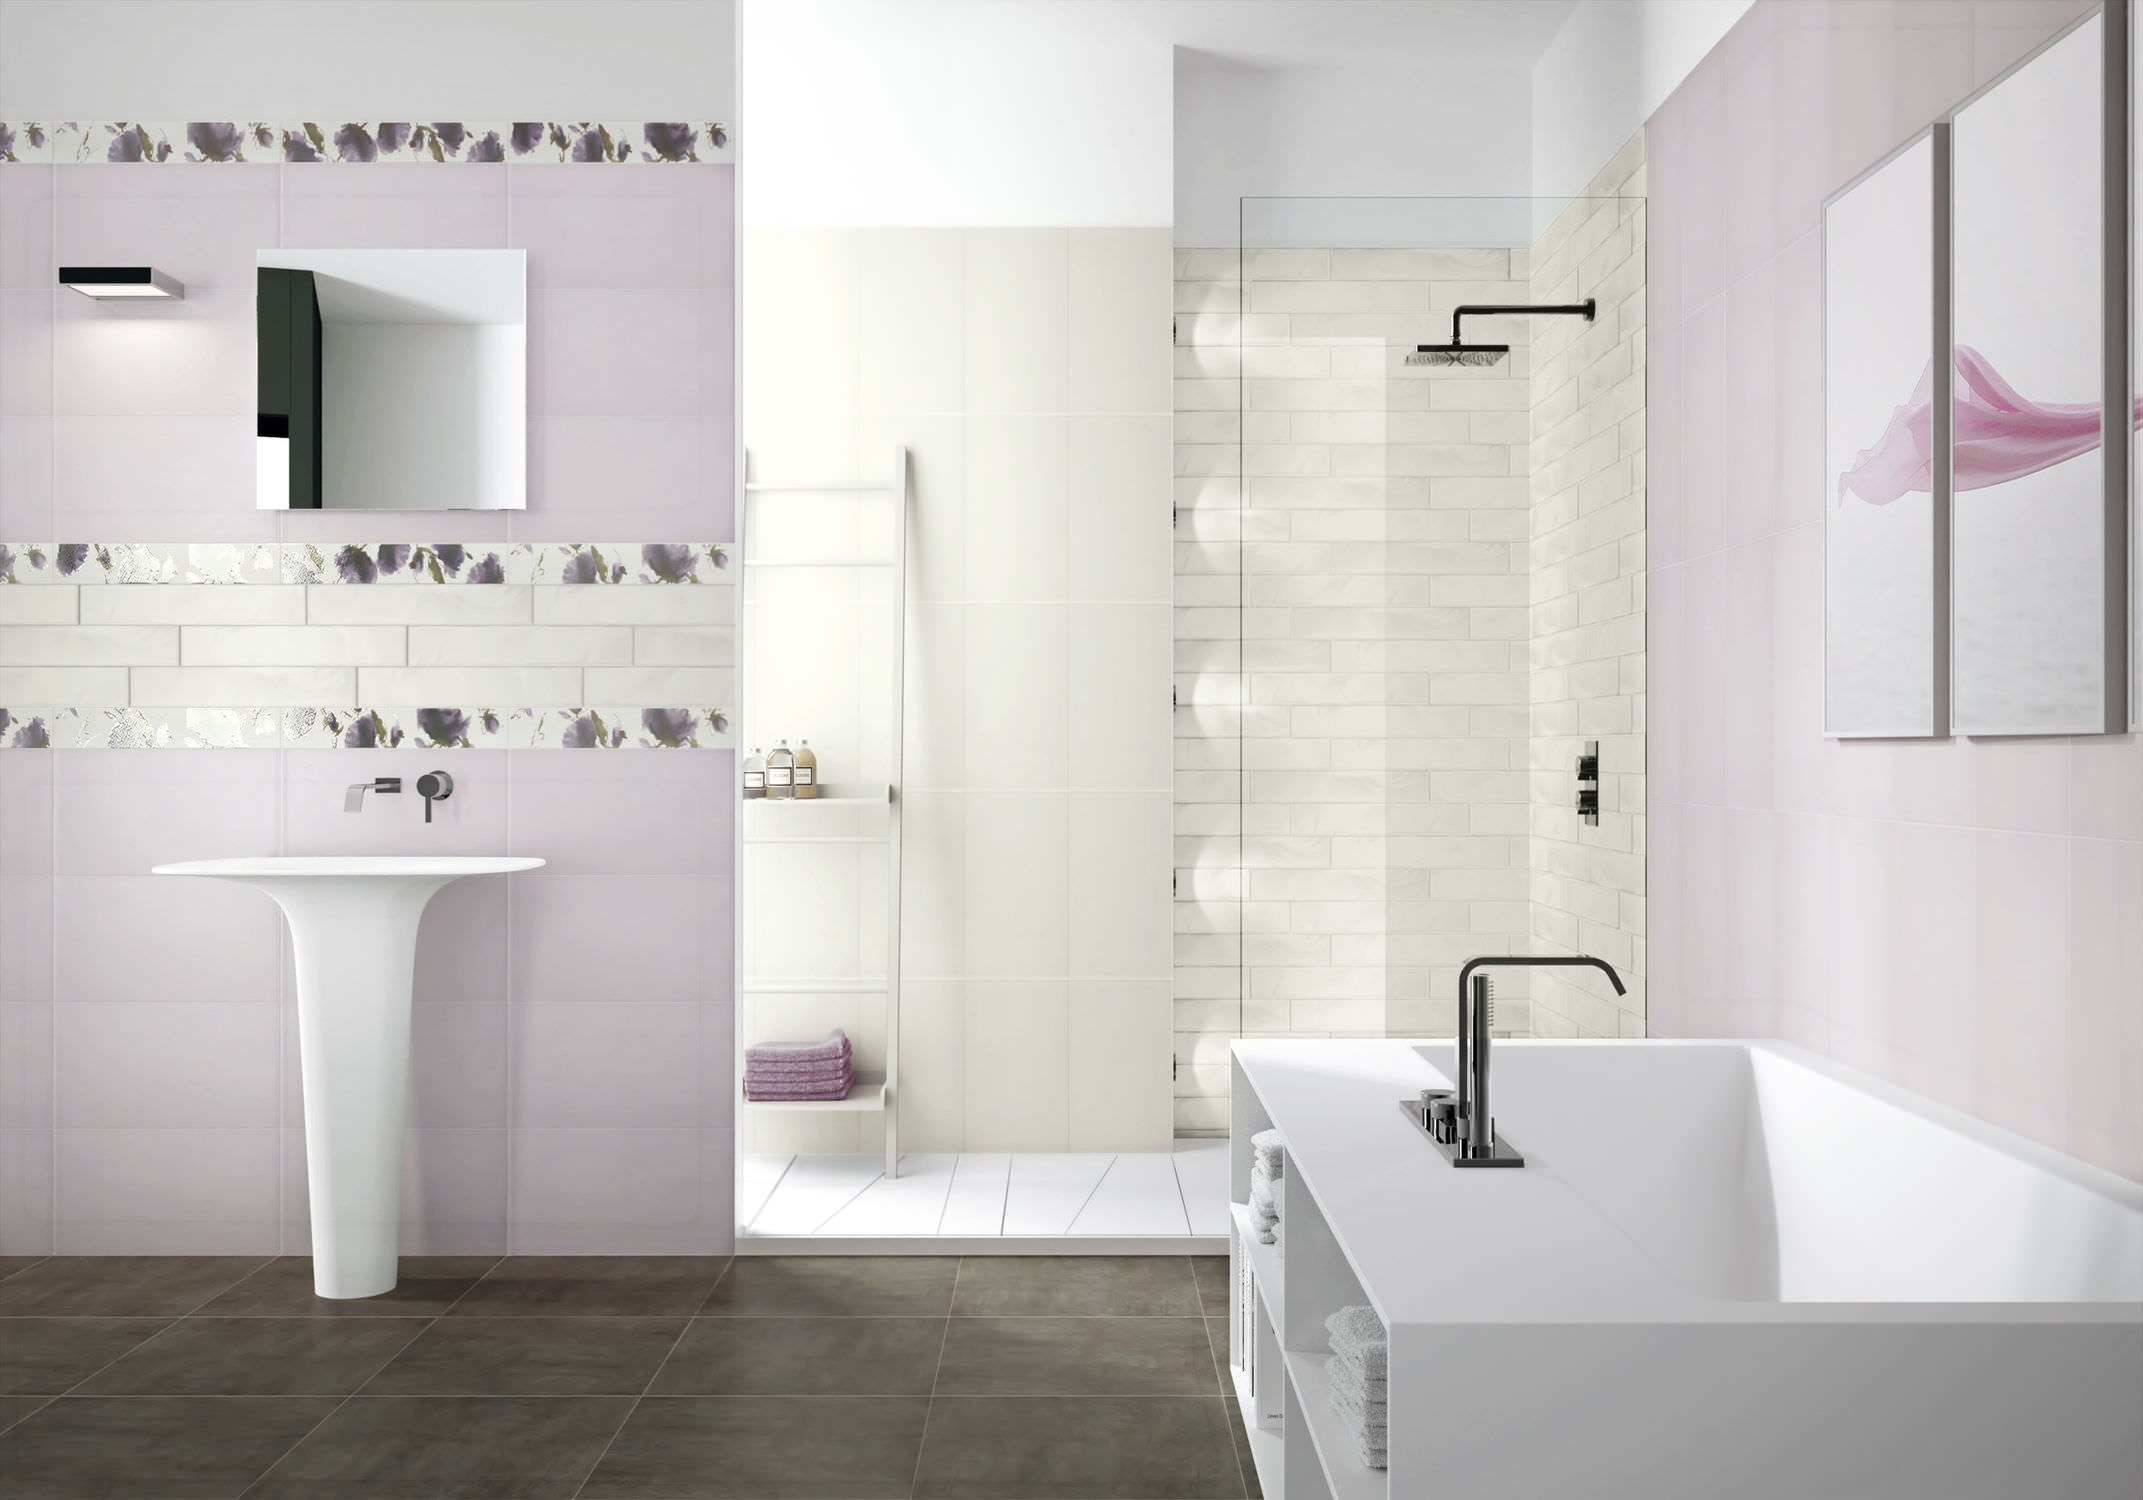 Wall Texture Designs For Bathroom : Good ideas and pictures of modern bathroom tiles texture